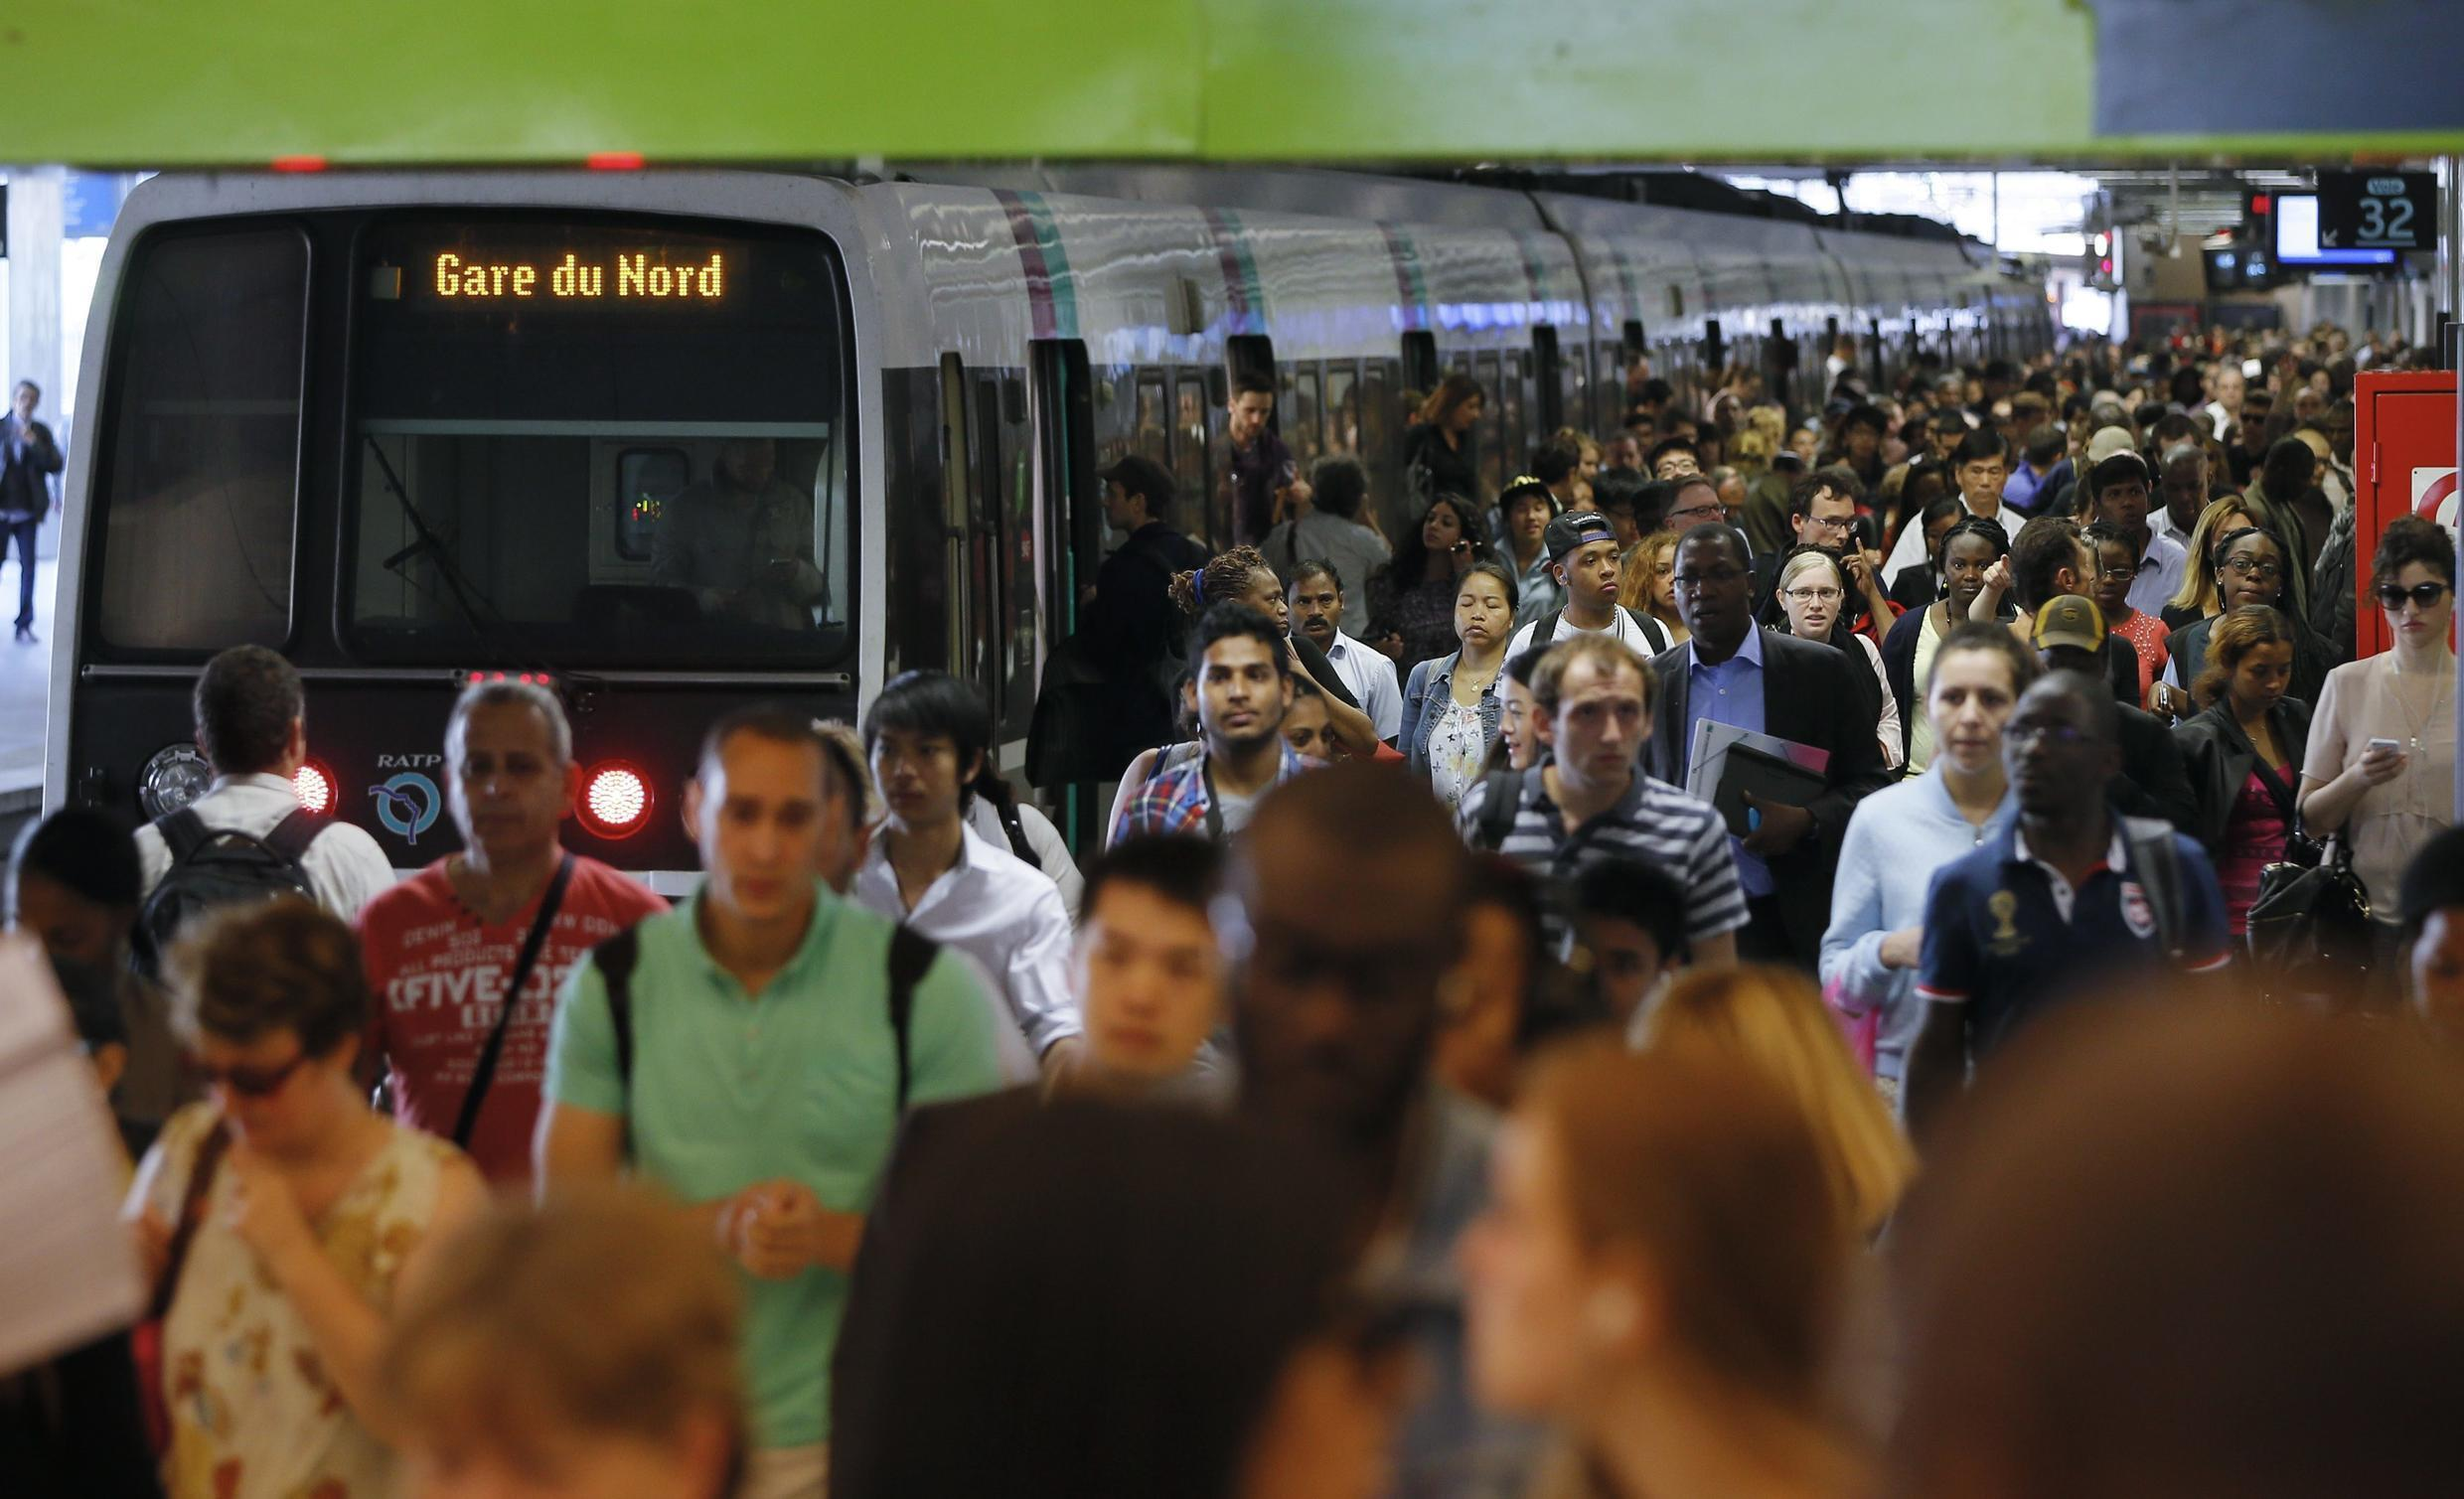 Crowds get off a commuter train at Gare du Nord railway station in Paris, 13 June